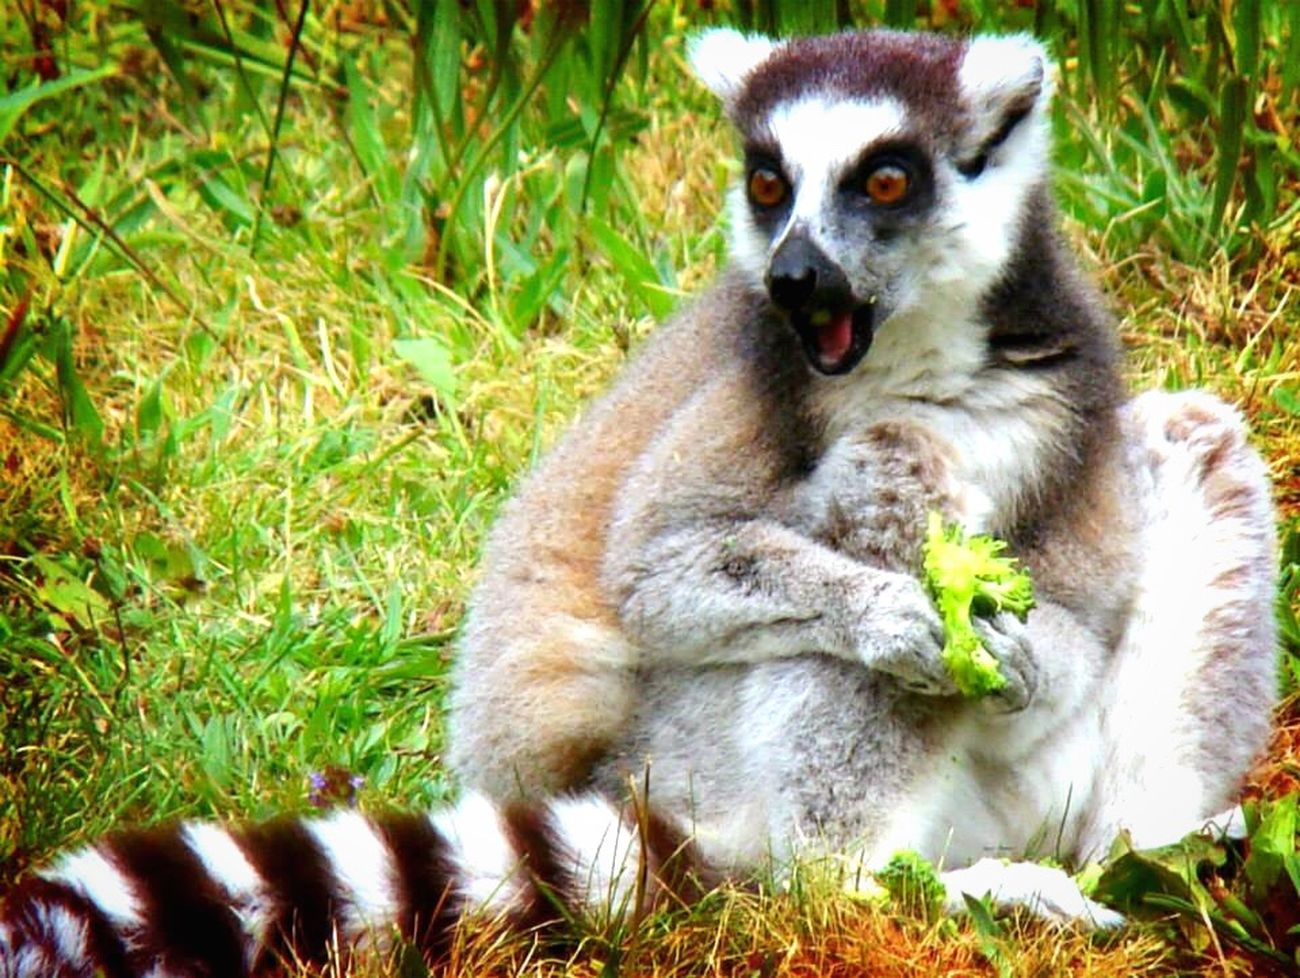 I think it's a kind of lemur Animal Beautiful Animals  Lemur? Broccoli Grass Sun Animal Photography Shocked Surprised